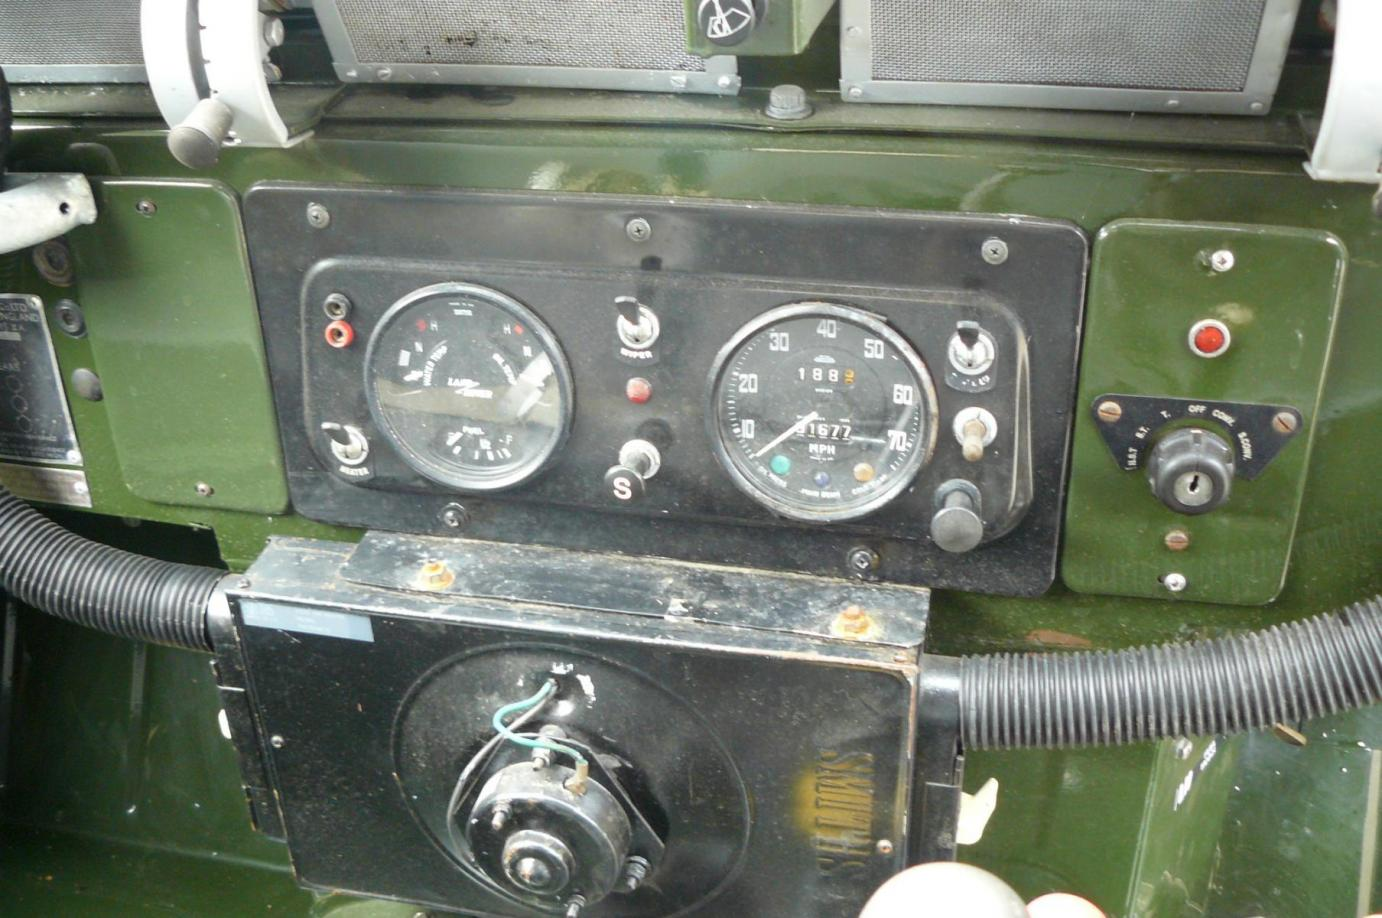 Army Vehicles For Sale >> Land Rover Lightweight Airportable, | Jake Wright Ltd ...